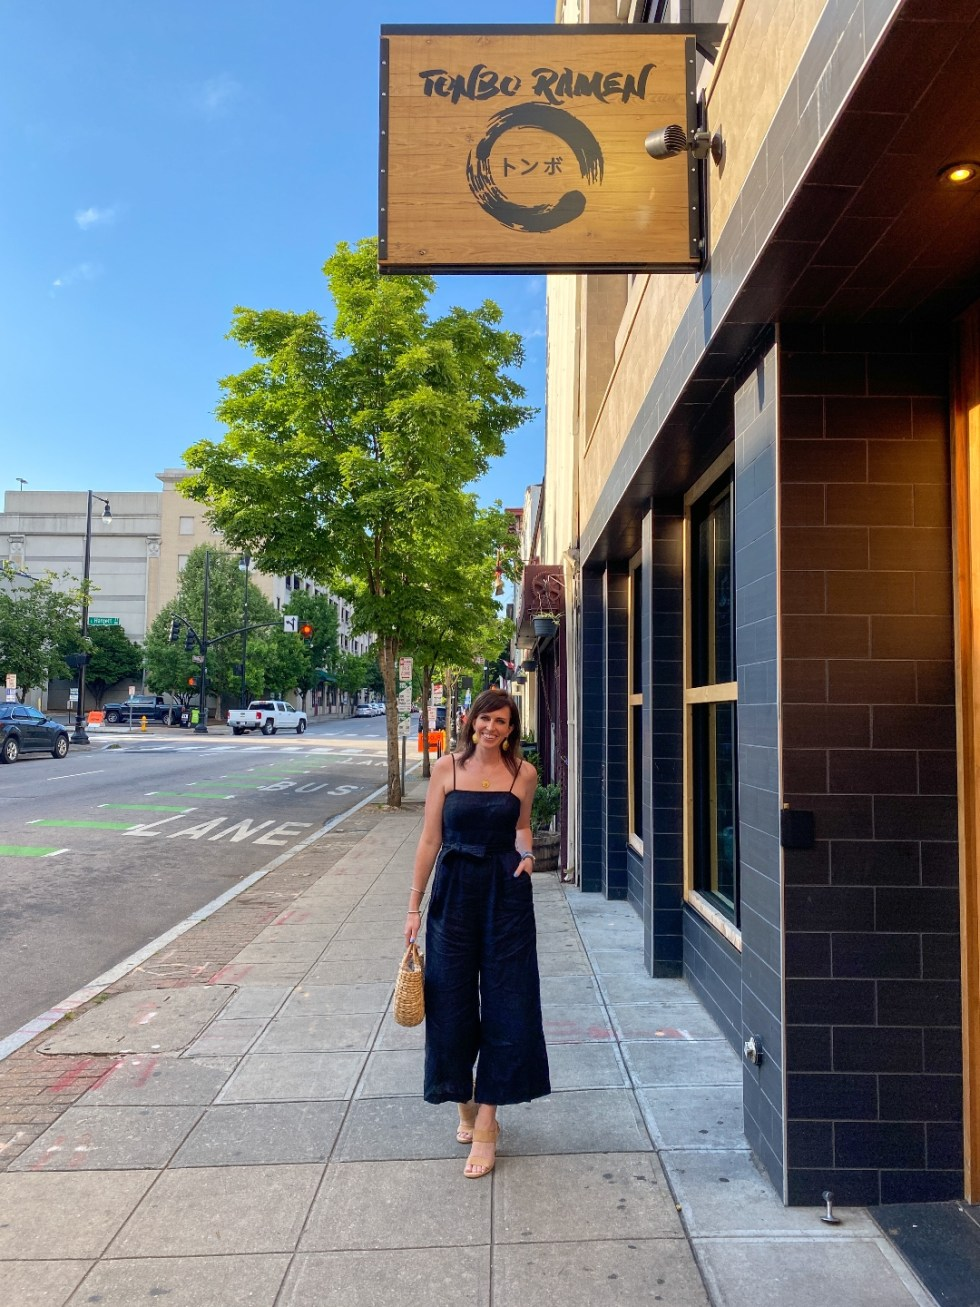 The Ultimate Girls' Day Out in Raleigh - I'm Fixin' To - @imfixintoblog | Girls Day Out In Raleigh by popular NC lifestyle blog, I'm Fixin' To: image of a woman wearing a black jumper and standing under a Tonbo Ramen sign.